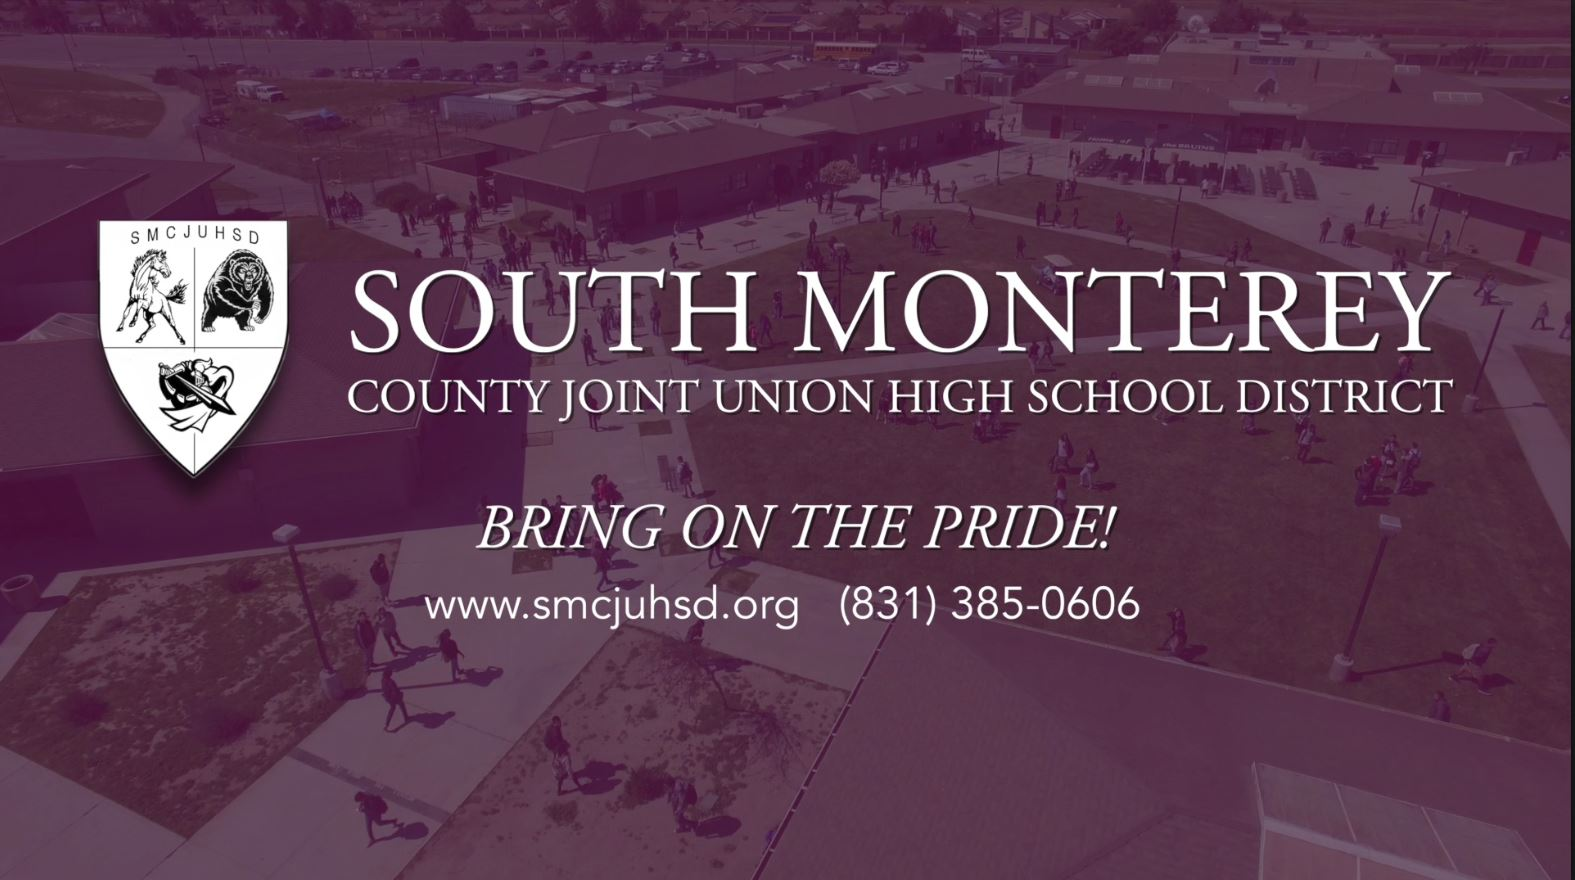 South Monterey County JUHSD Video